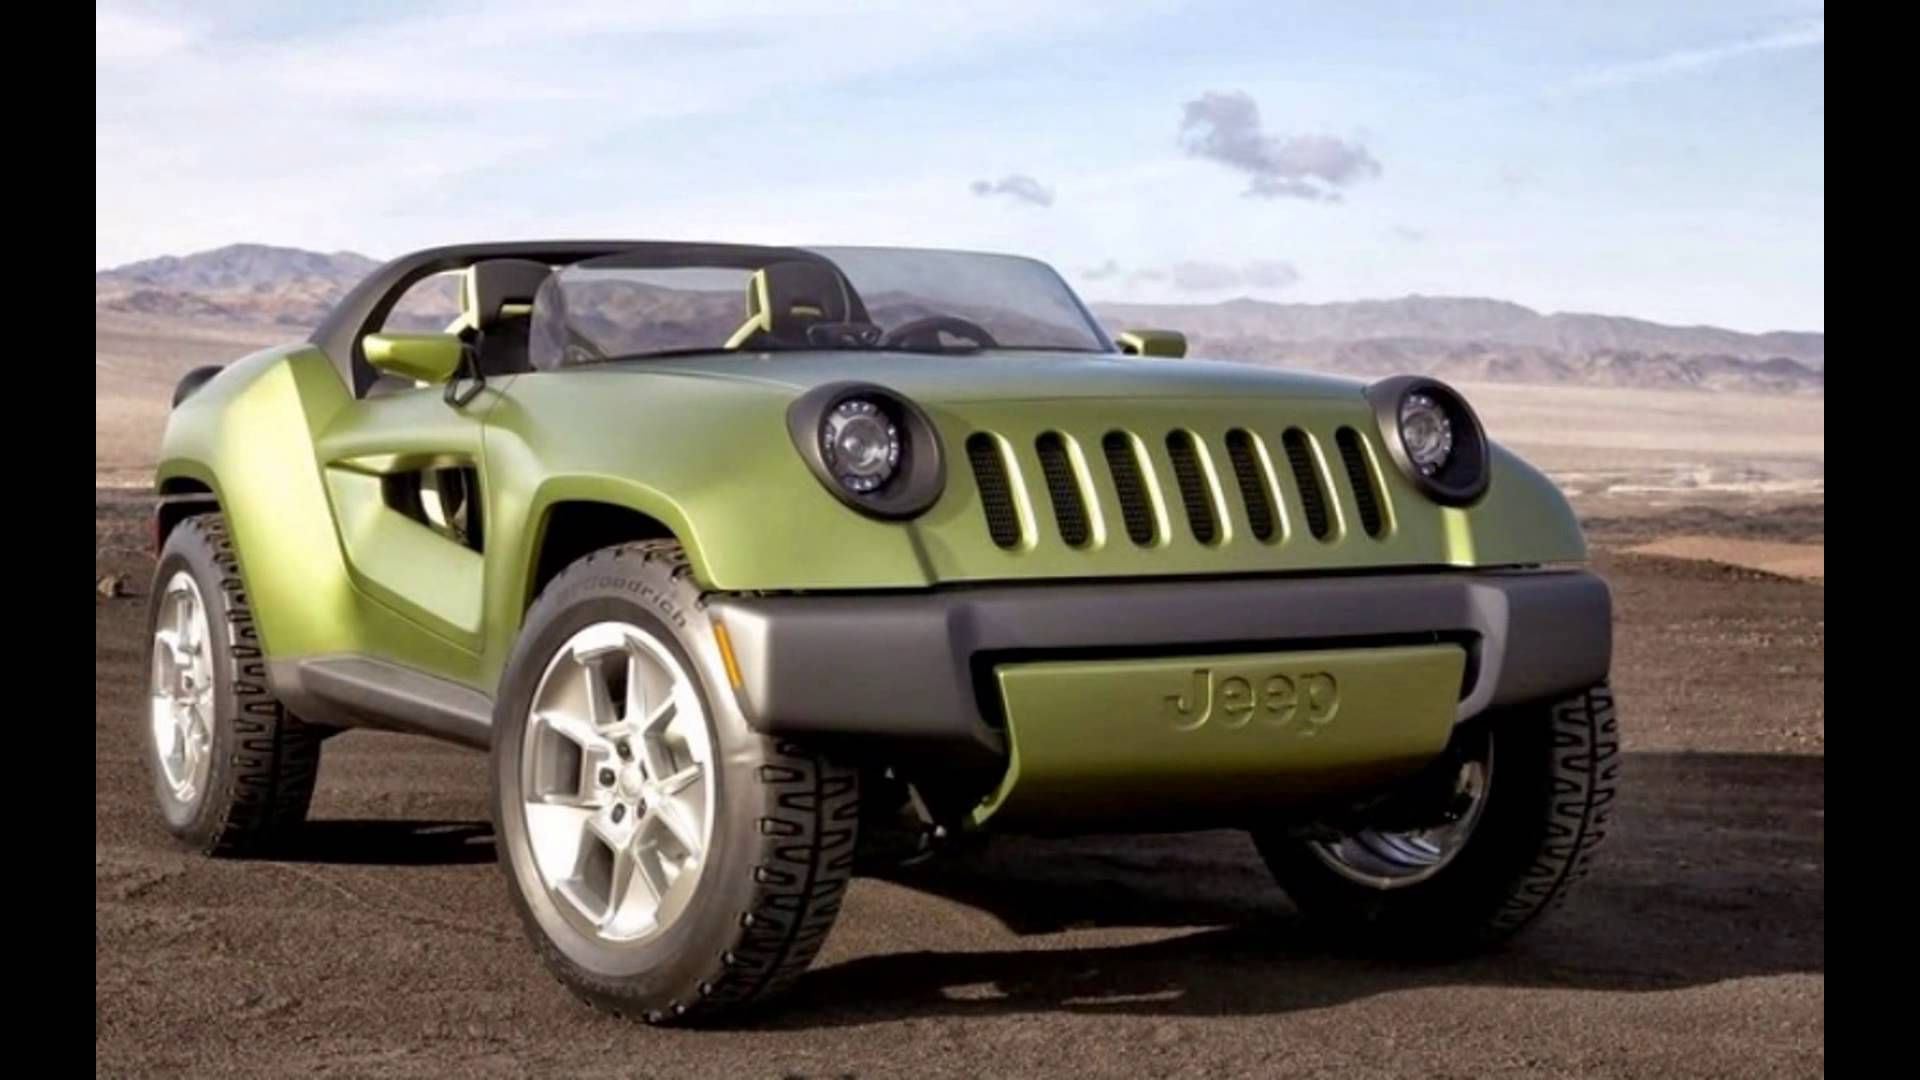 Best Jeep Sports Car Jeep, Nice